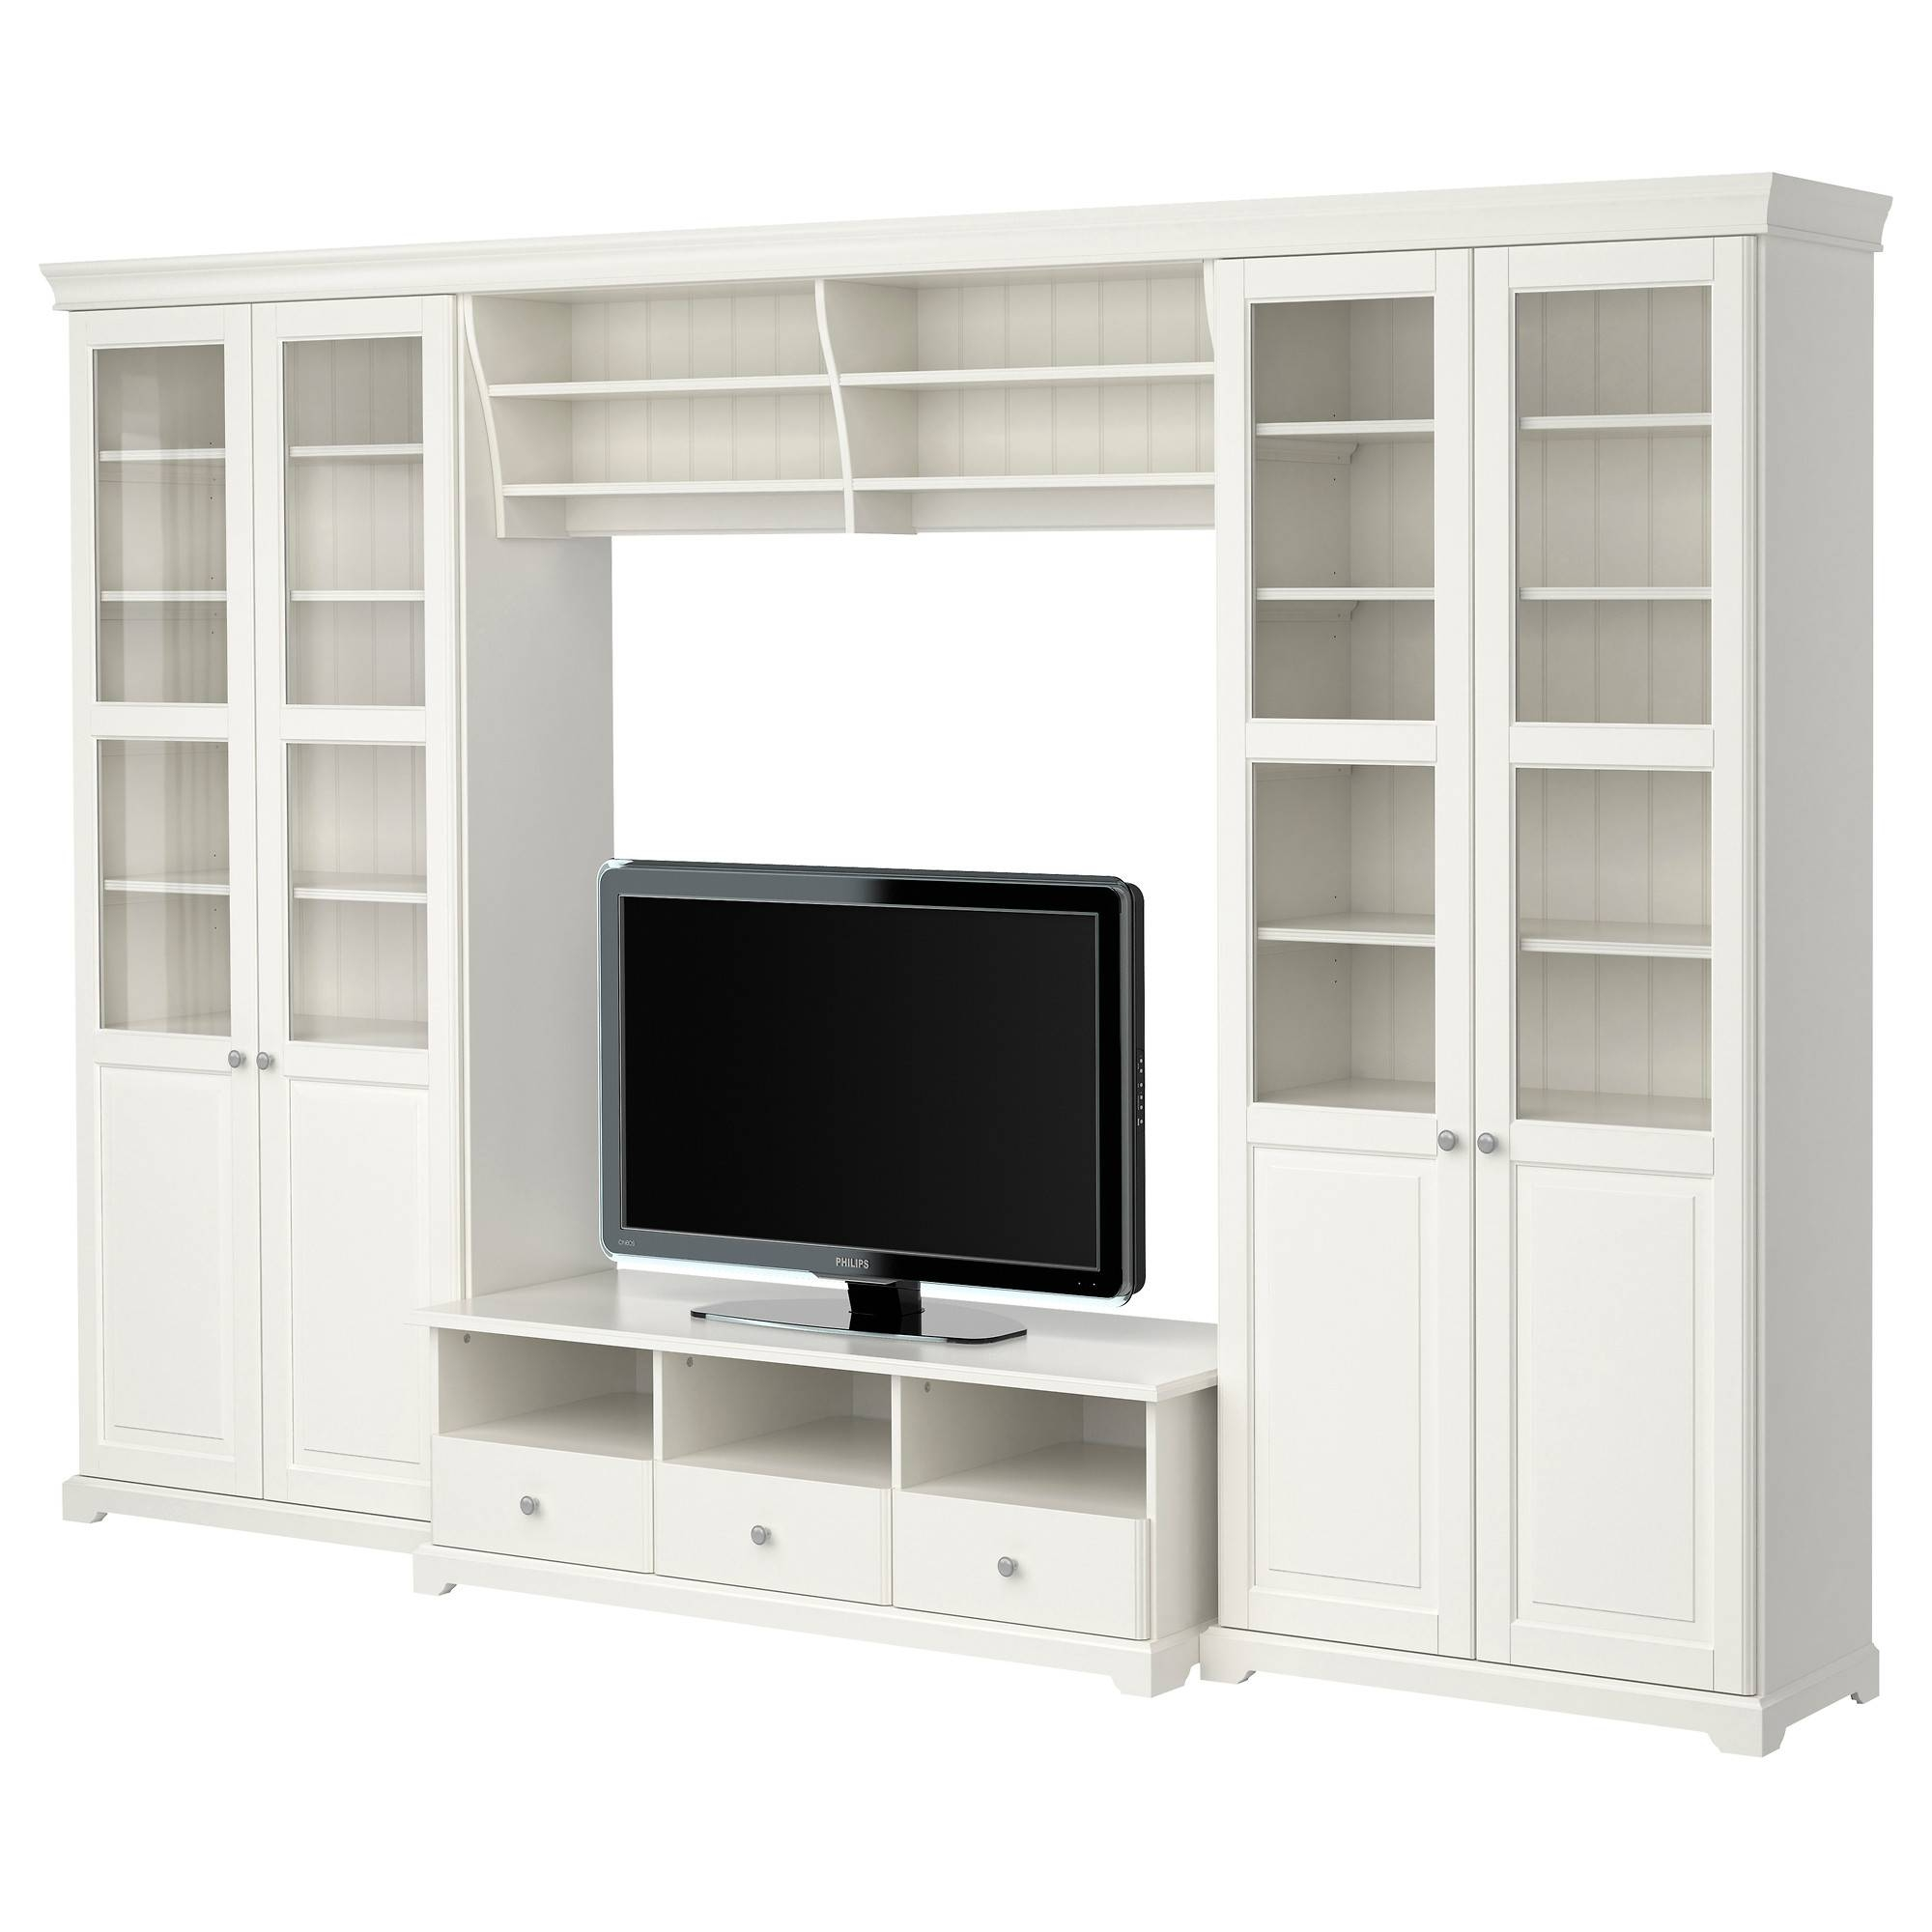 Tv Stands & Entertainment Centers – Ikea For Bookshelf Tv Stands Combo (View 3 of 15)